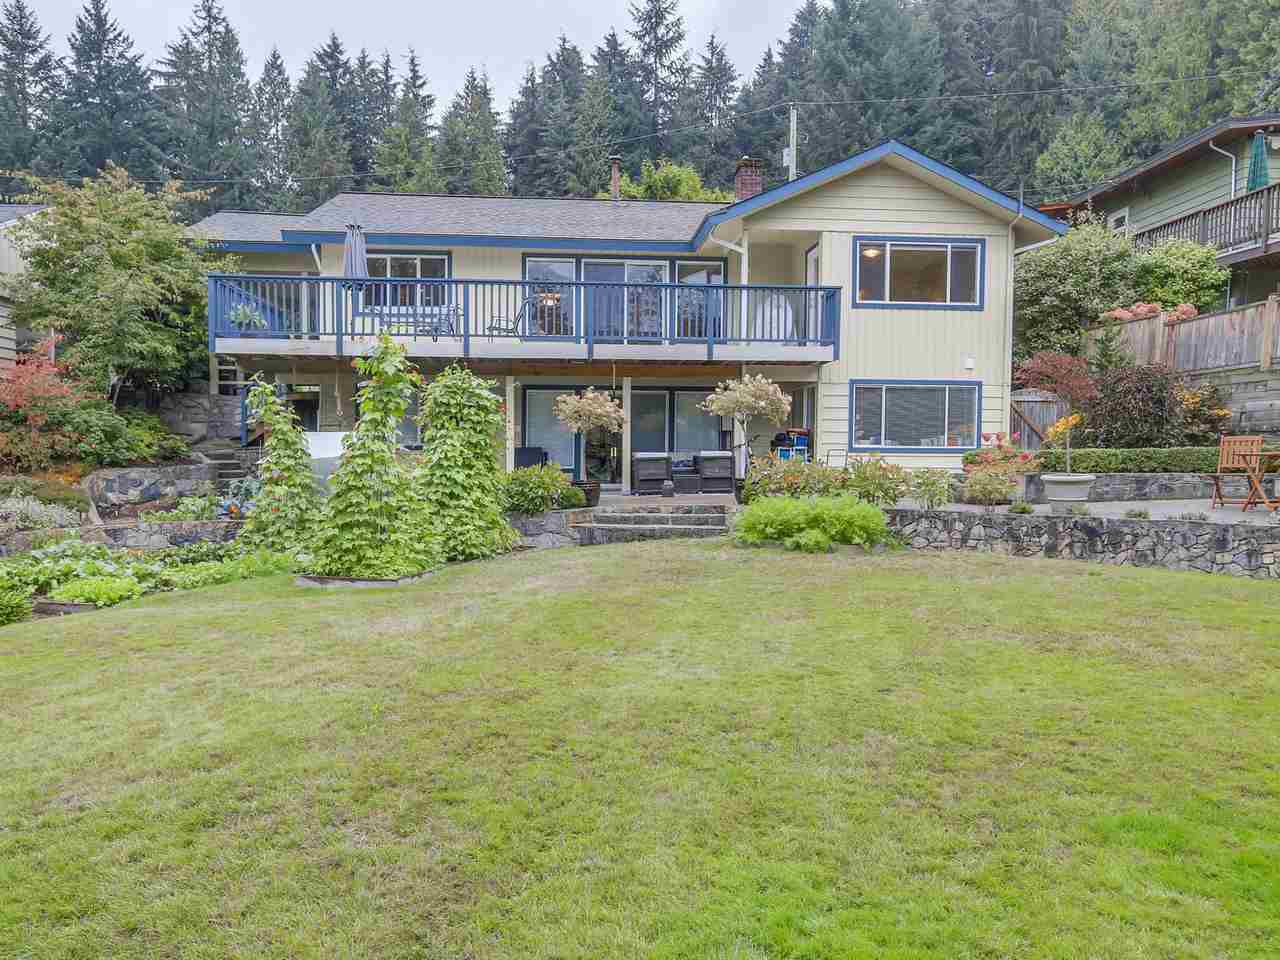 """Main Photo: 907 PROSPECT Avenue in North Vancouver: Canyon Heights NV House for sale in """"Canyon Heights"""" : MLS®# R2107669"""